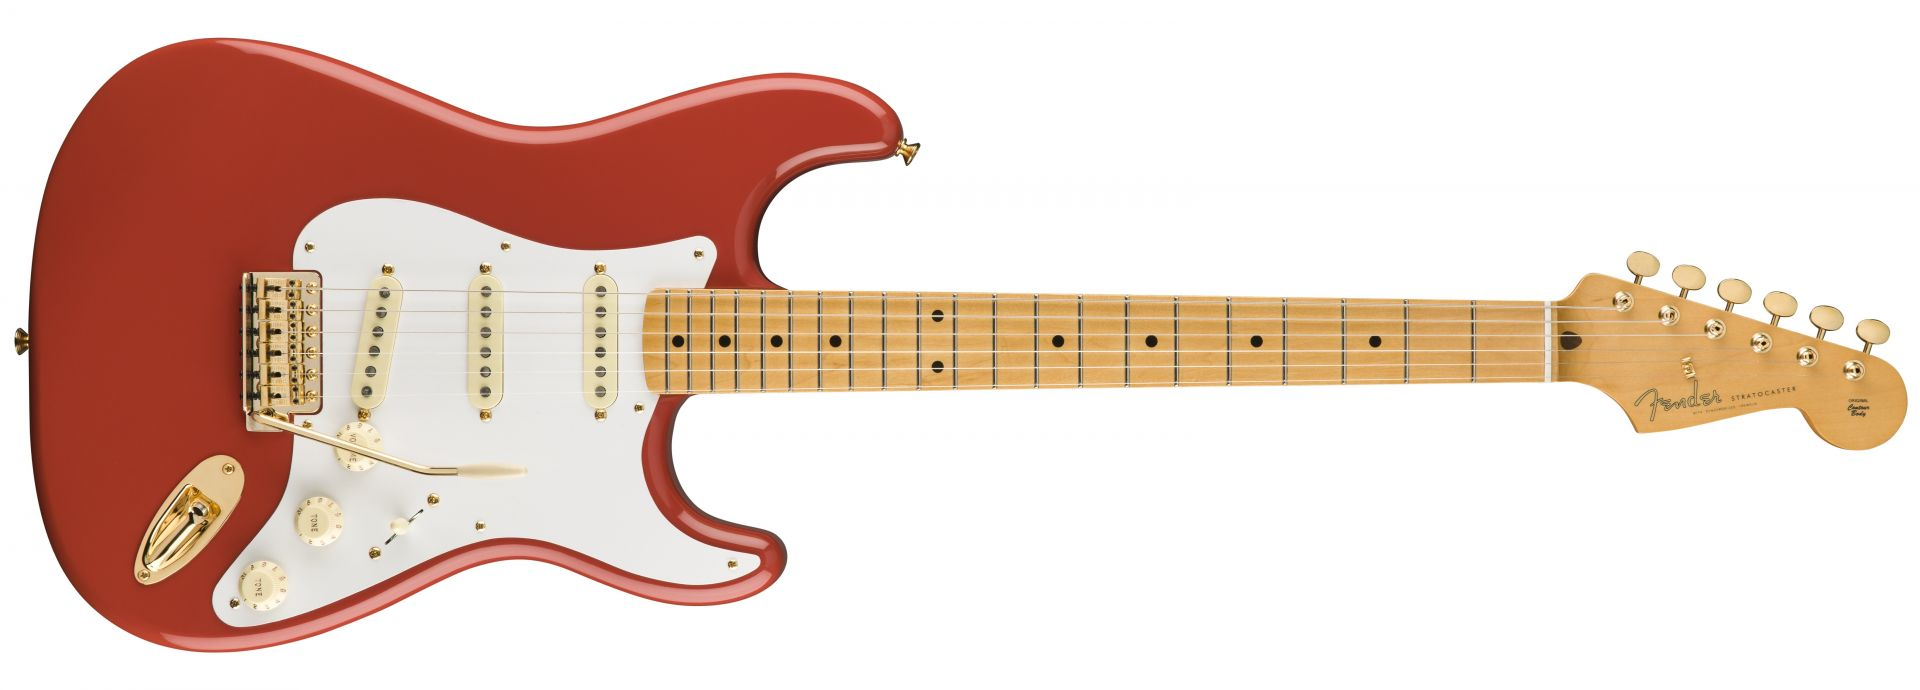 namm2018 エレキギター fender limited edition classic series